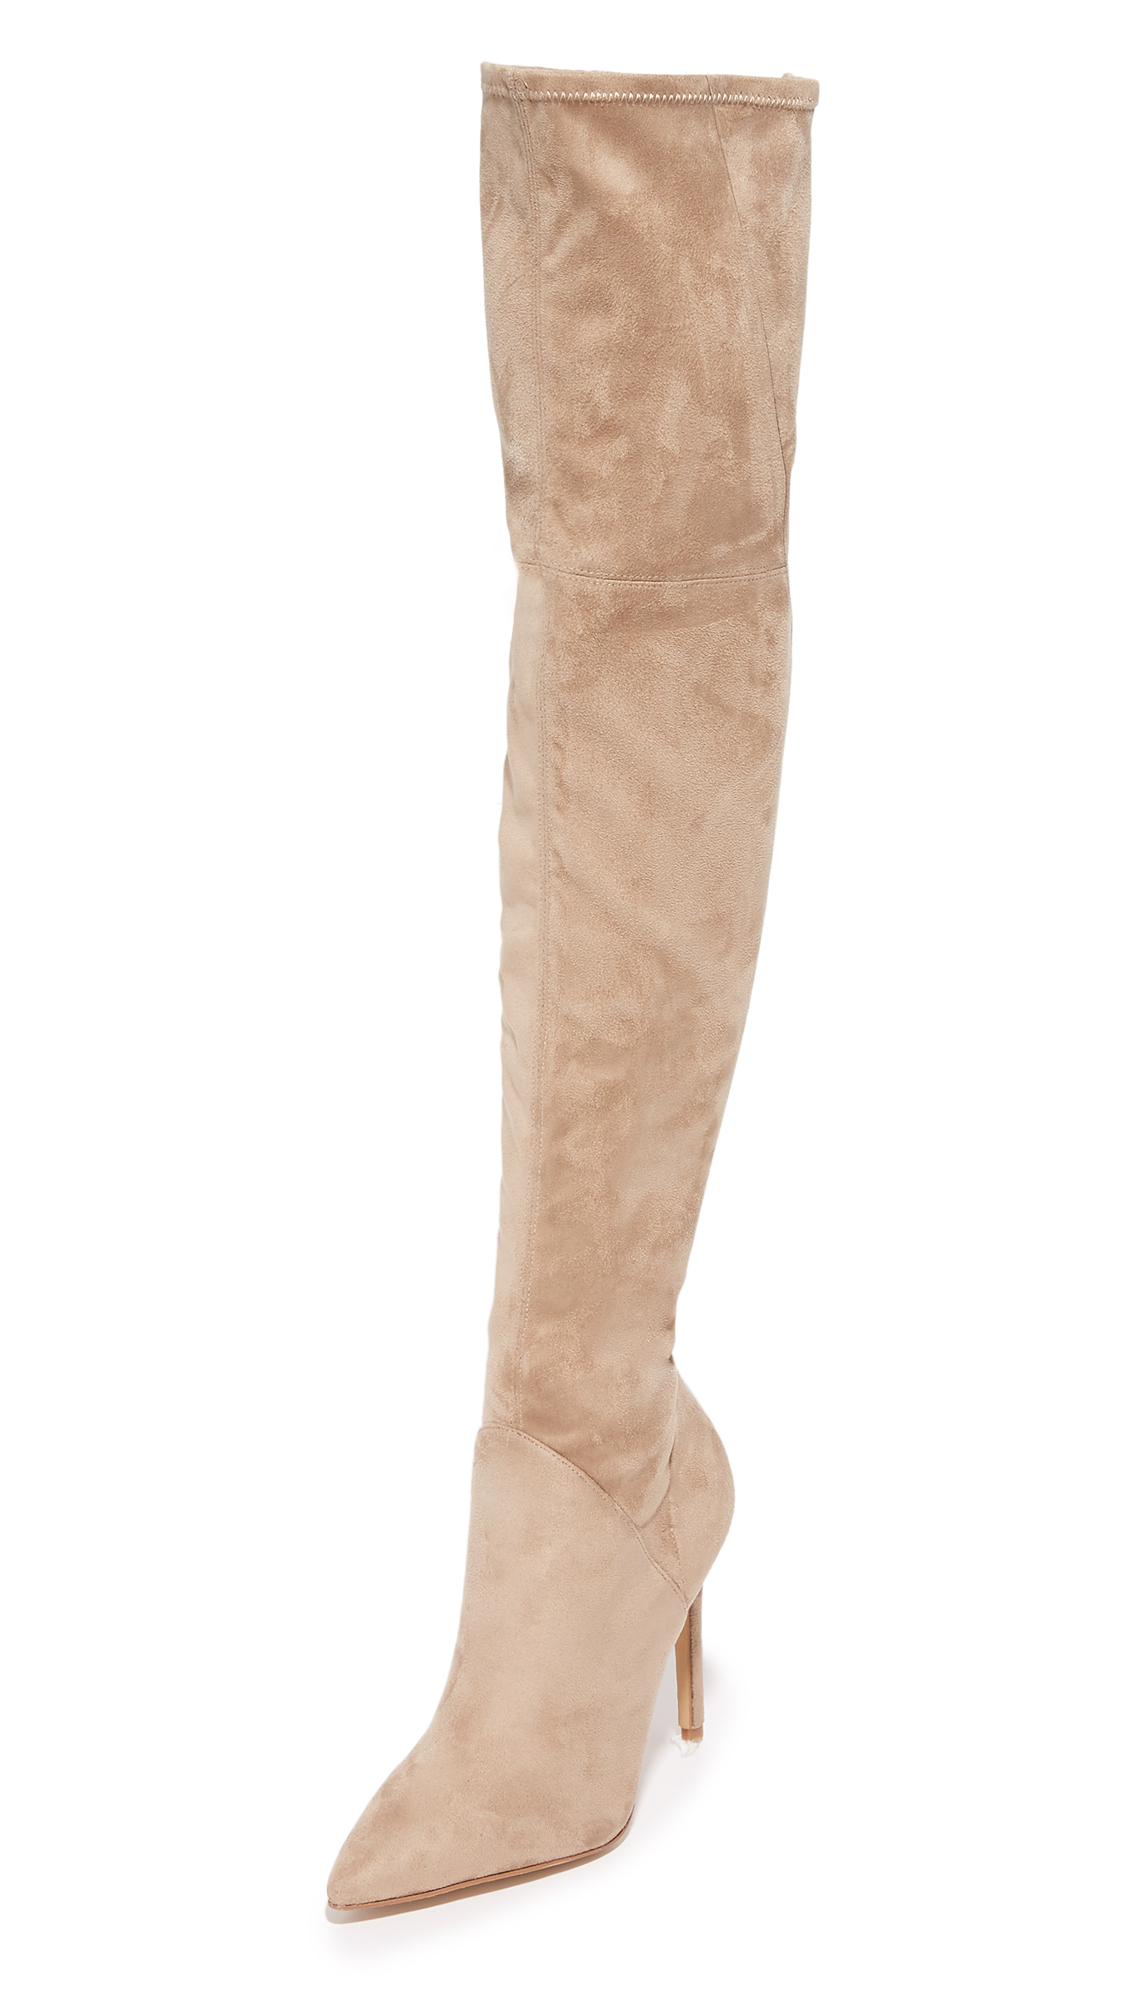 KENDALL + KYLIE Ayla Thigh High Boots - Sughero